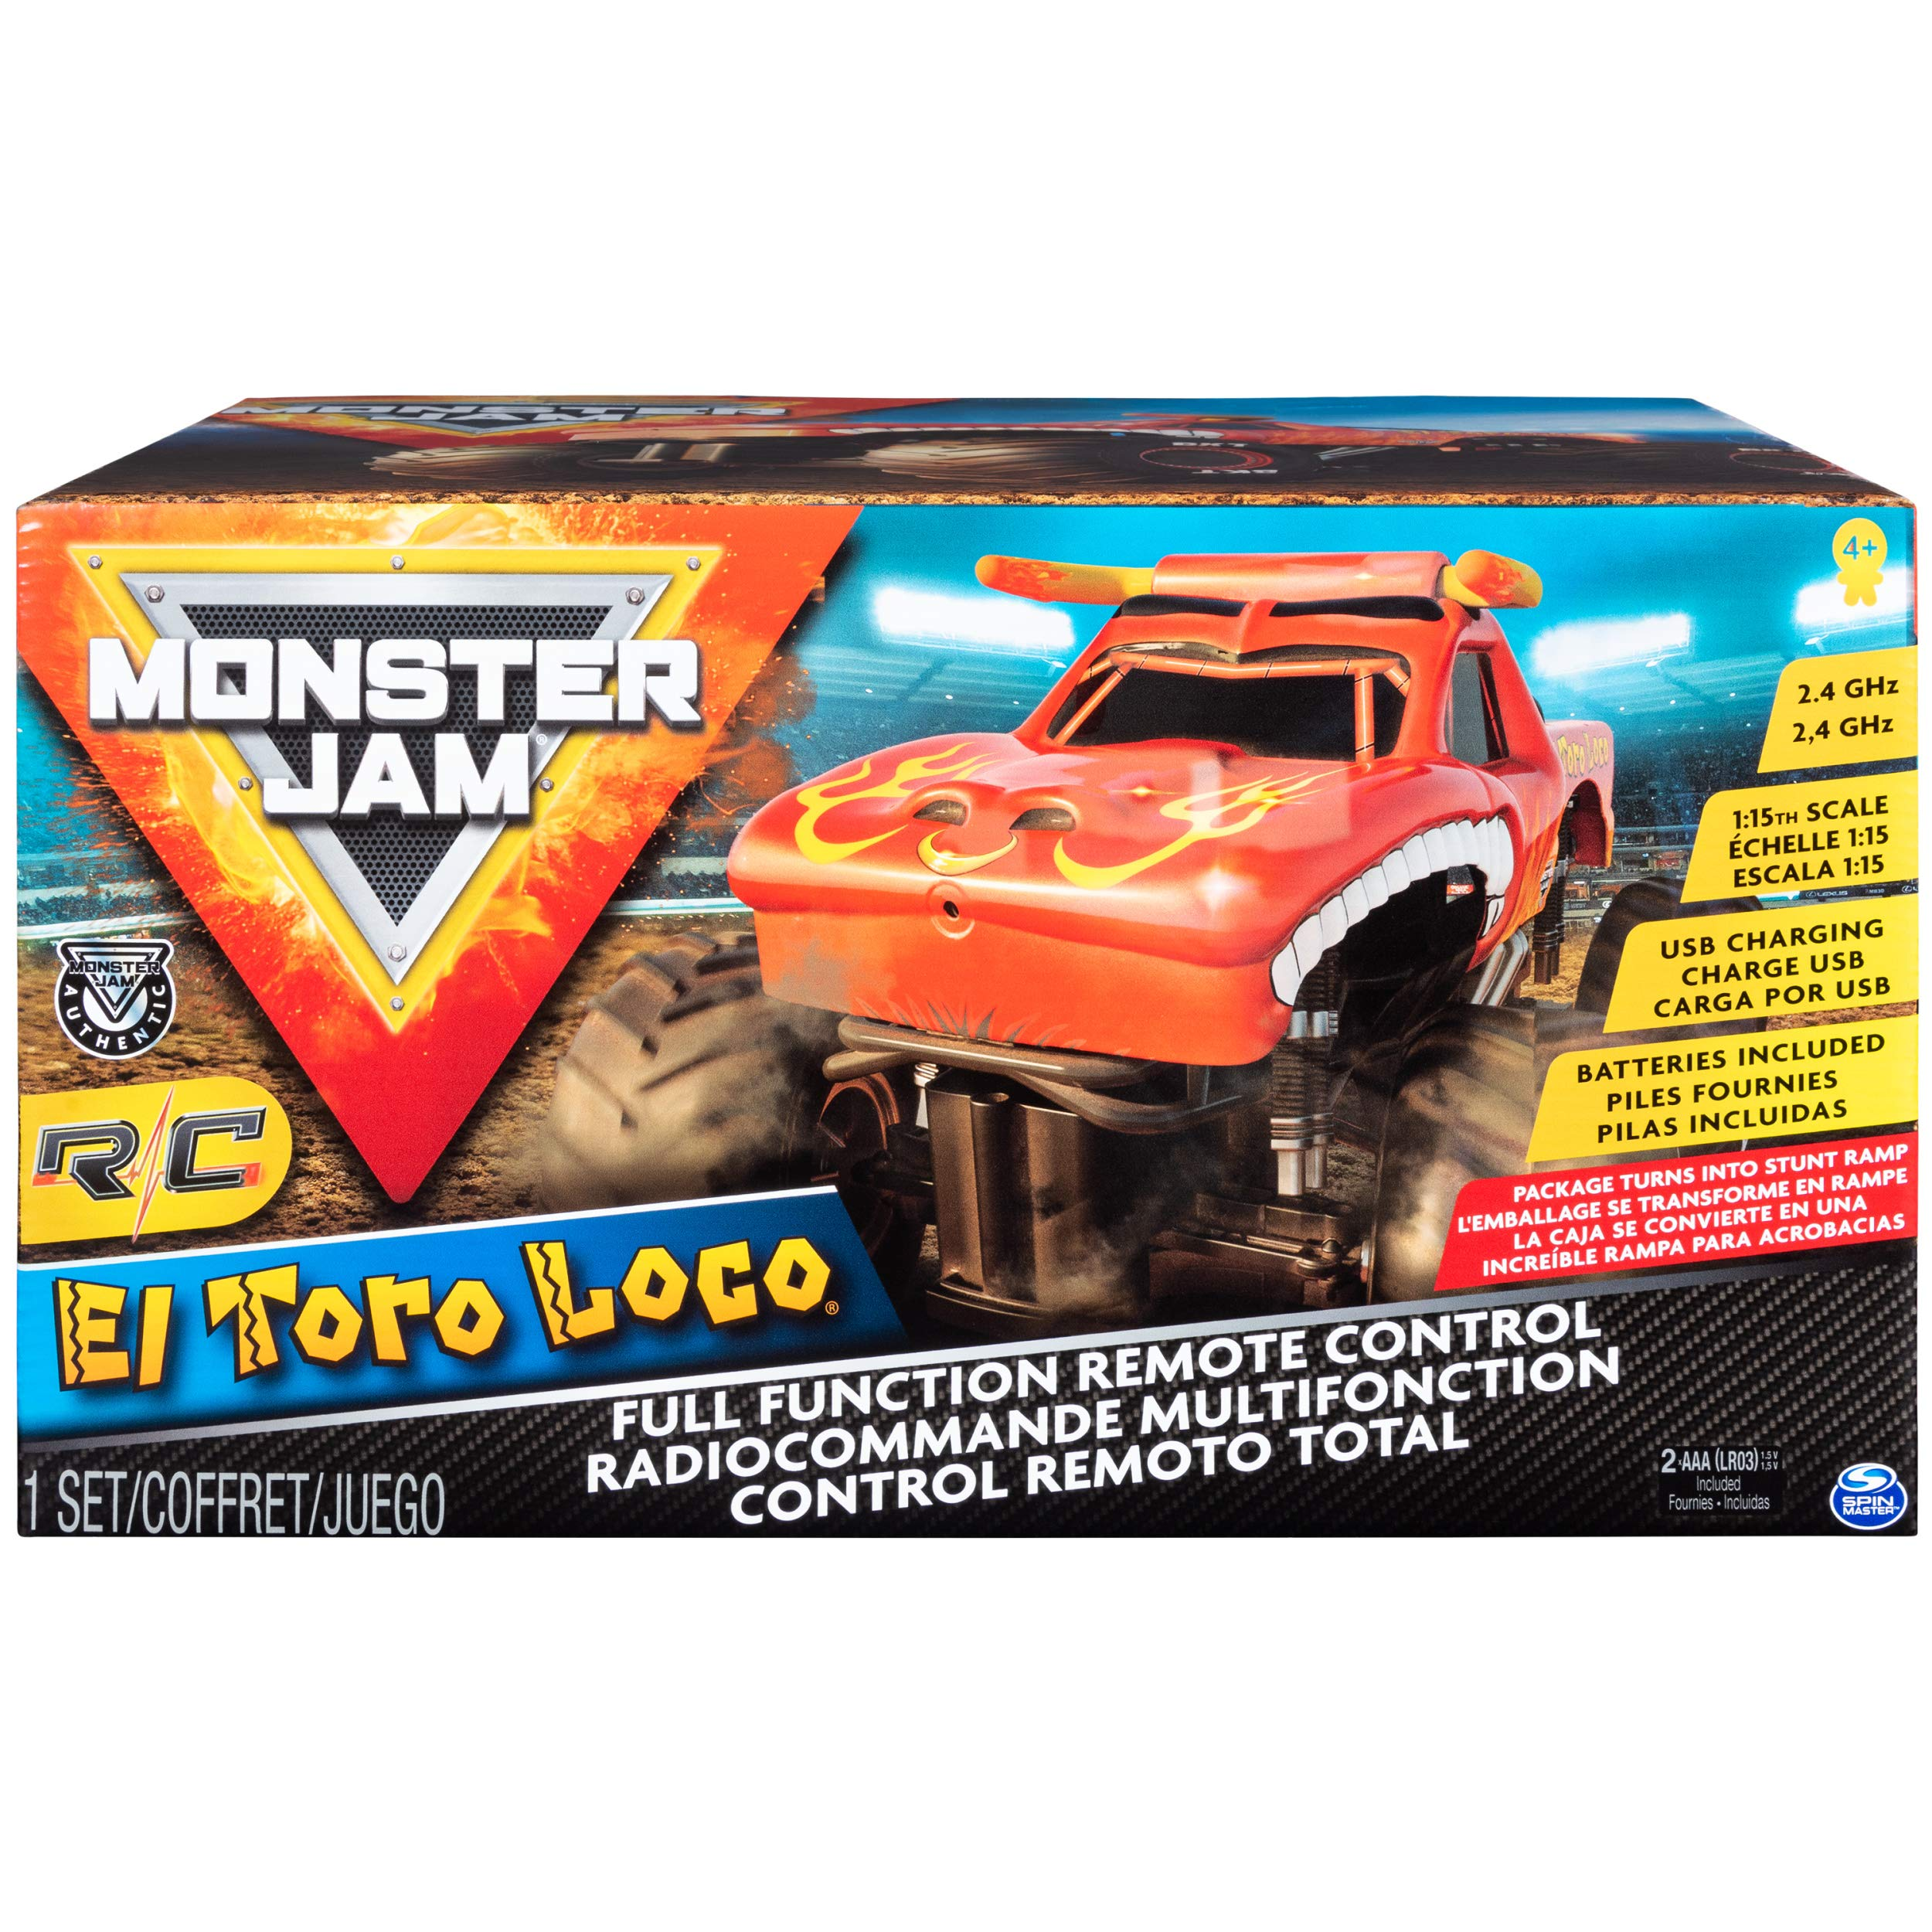 Monster Jam Official El Toro Loco Remote Control Monster Truck, 1:15 Scale, 2.4 GHz by Monster Jam (Image #2)